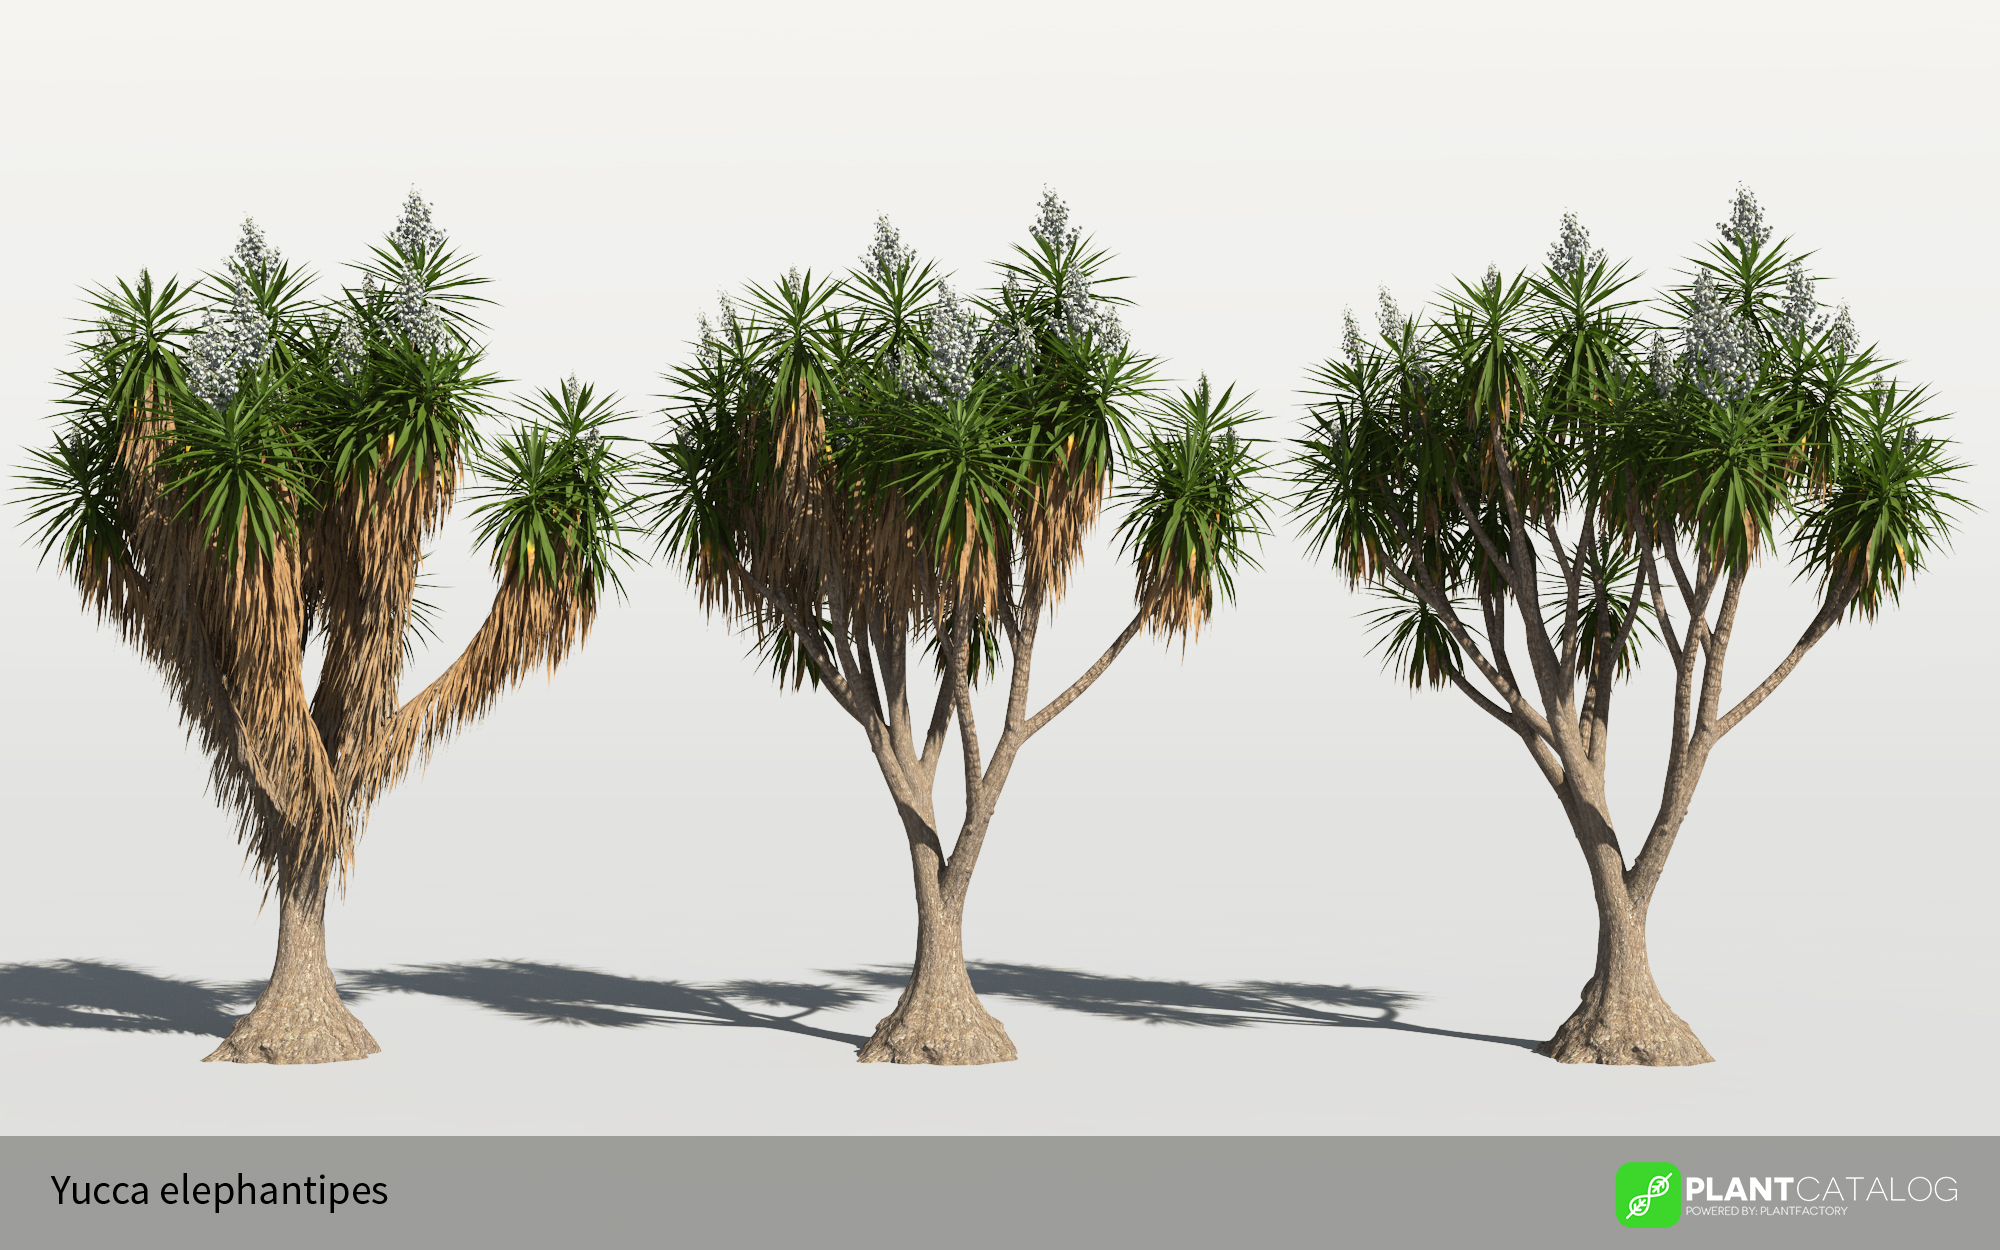 3D model of the Spineless yucca - Yucca elephantipes - from the PlantCatalog, rendered in VUE